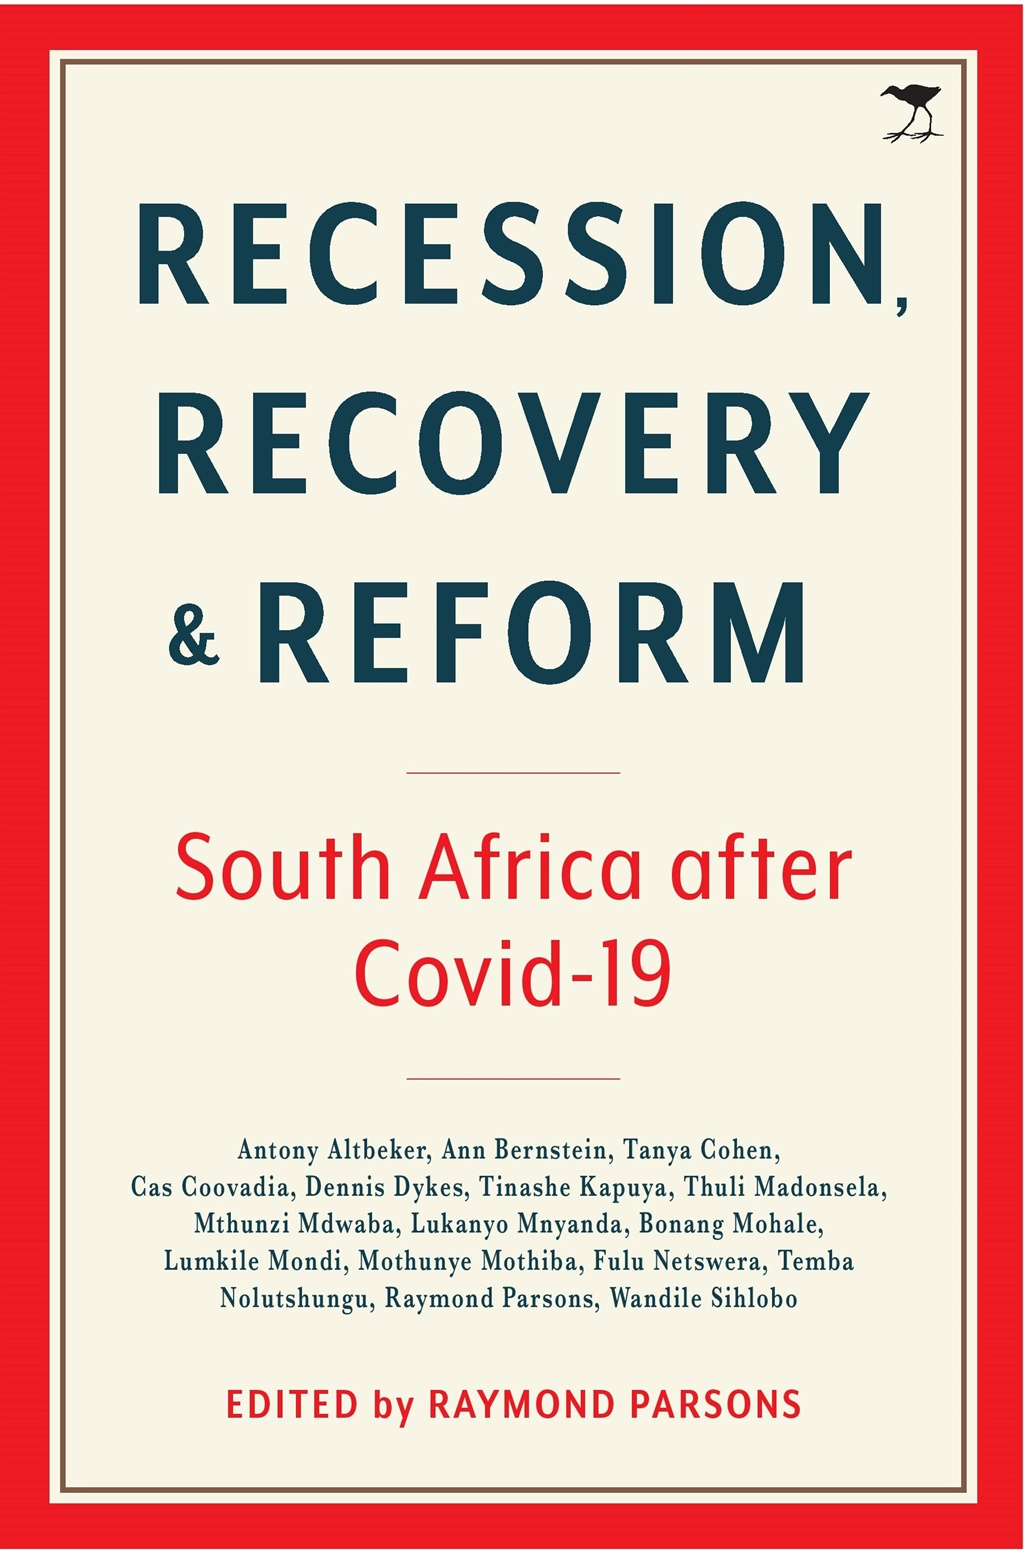 Chapter 9: A free market for a more prosperous South Africa